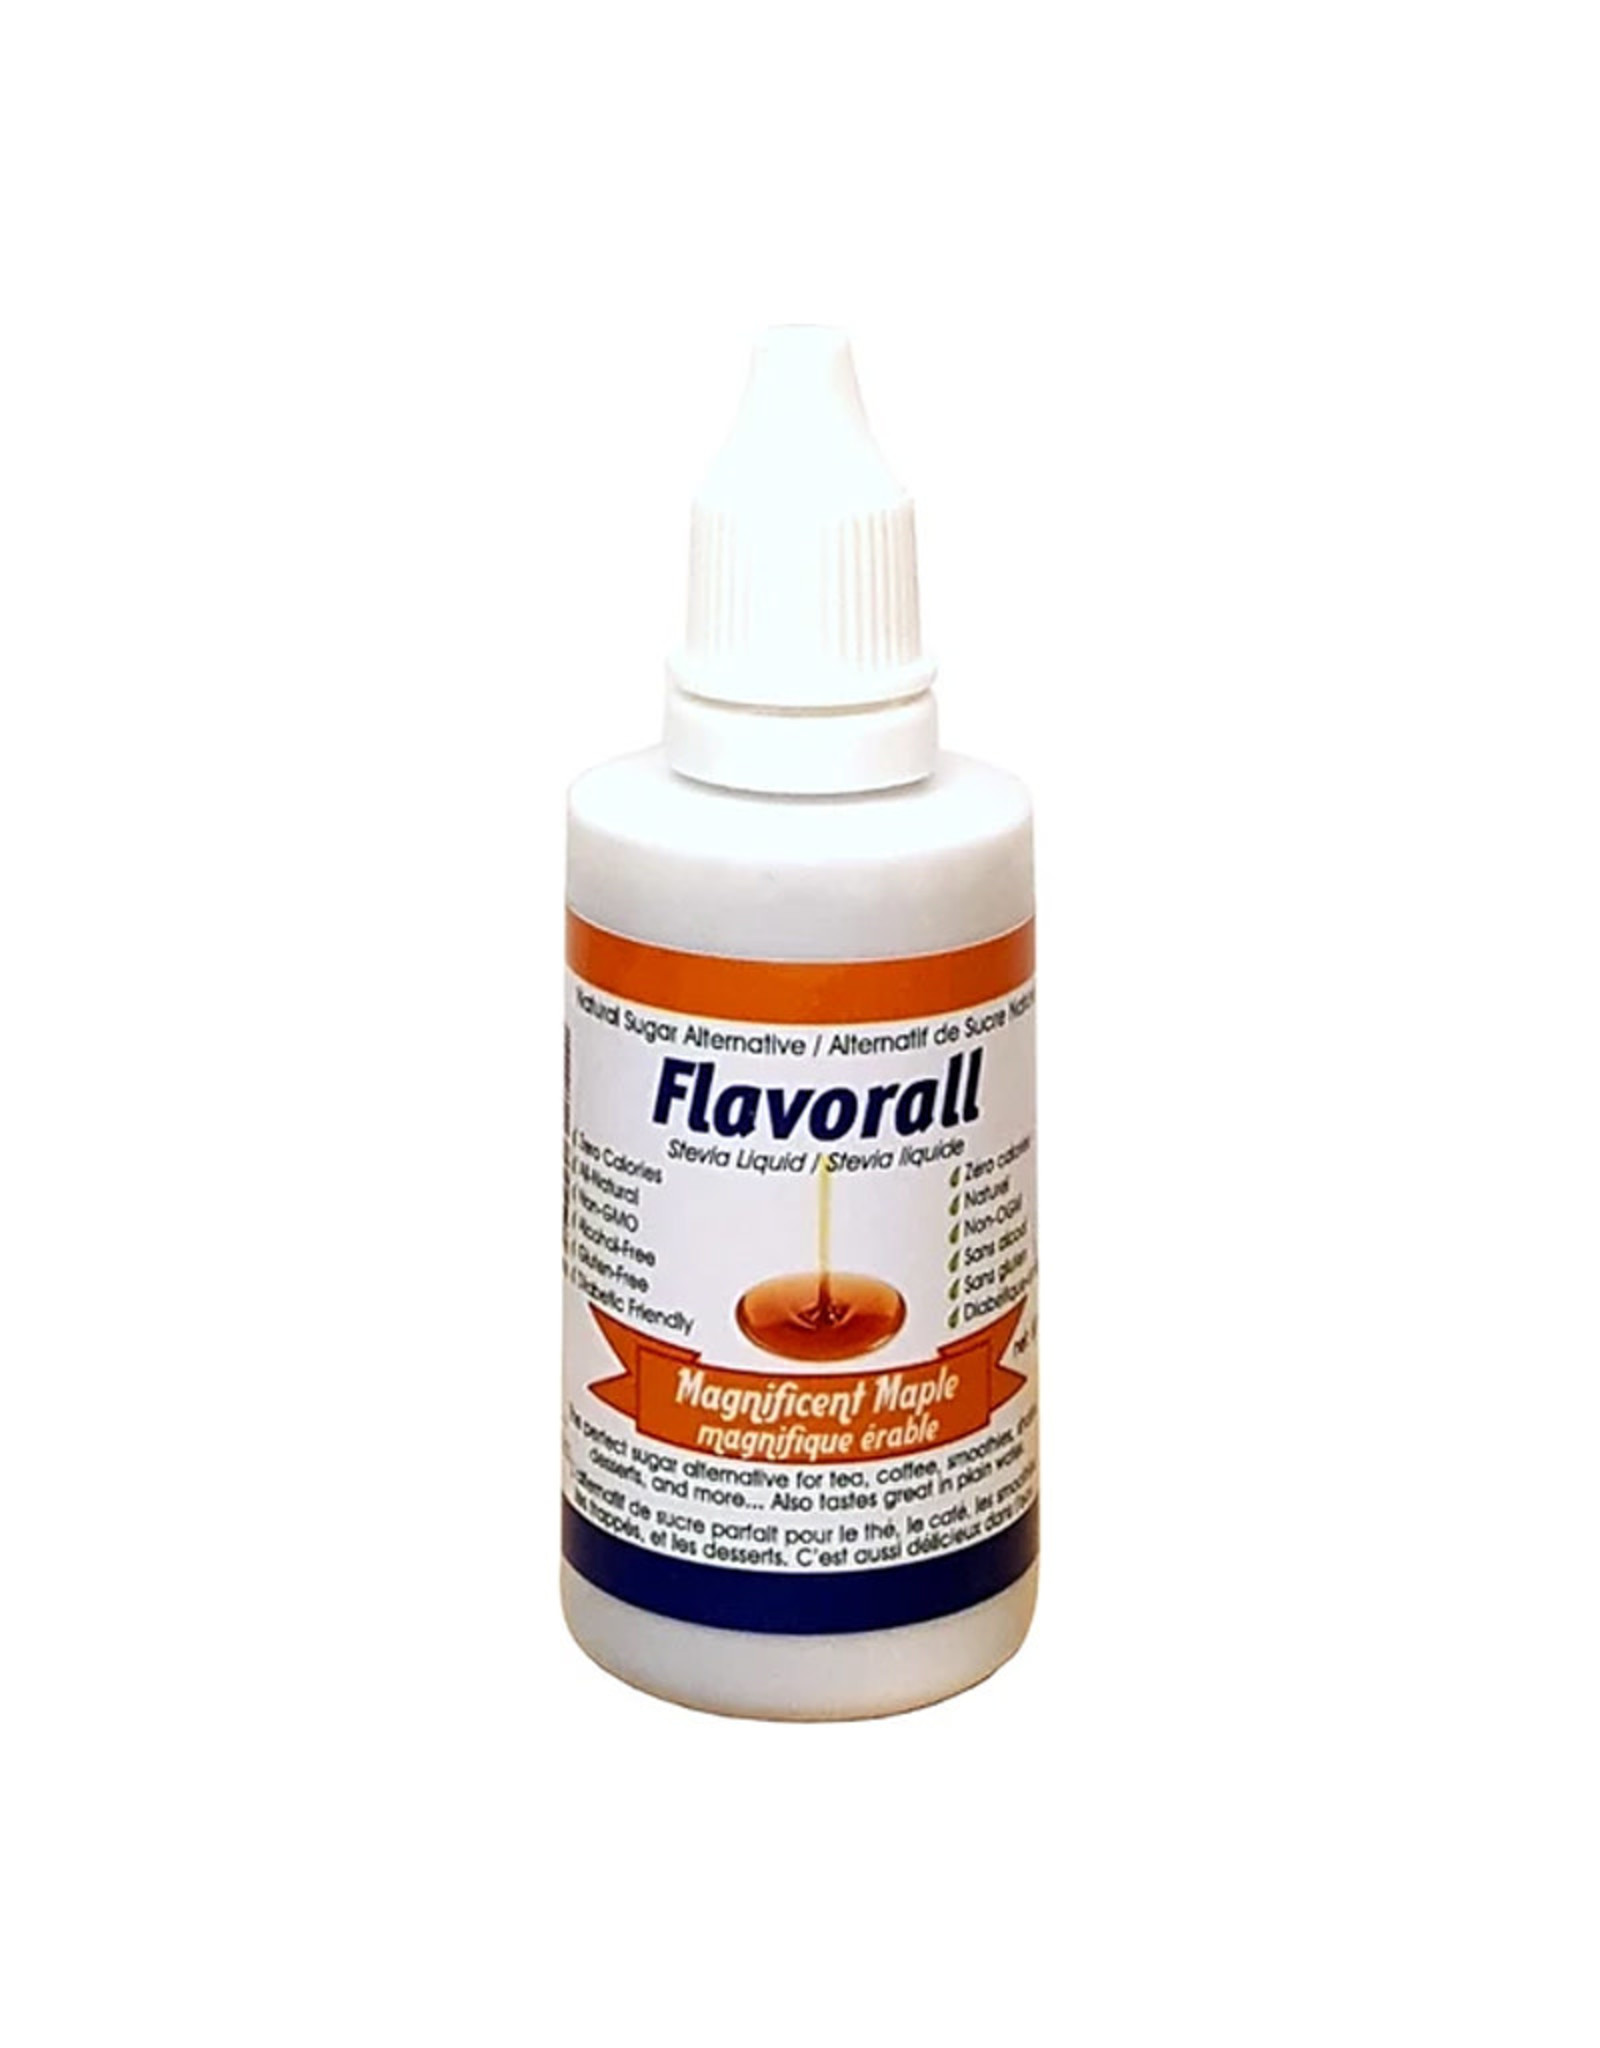 Flavorall Flavorall - Liquid Flavoured Stevia, Magnificent Maple